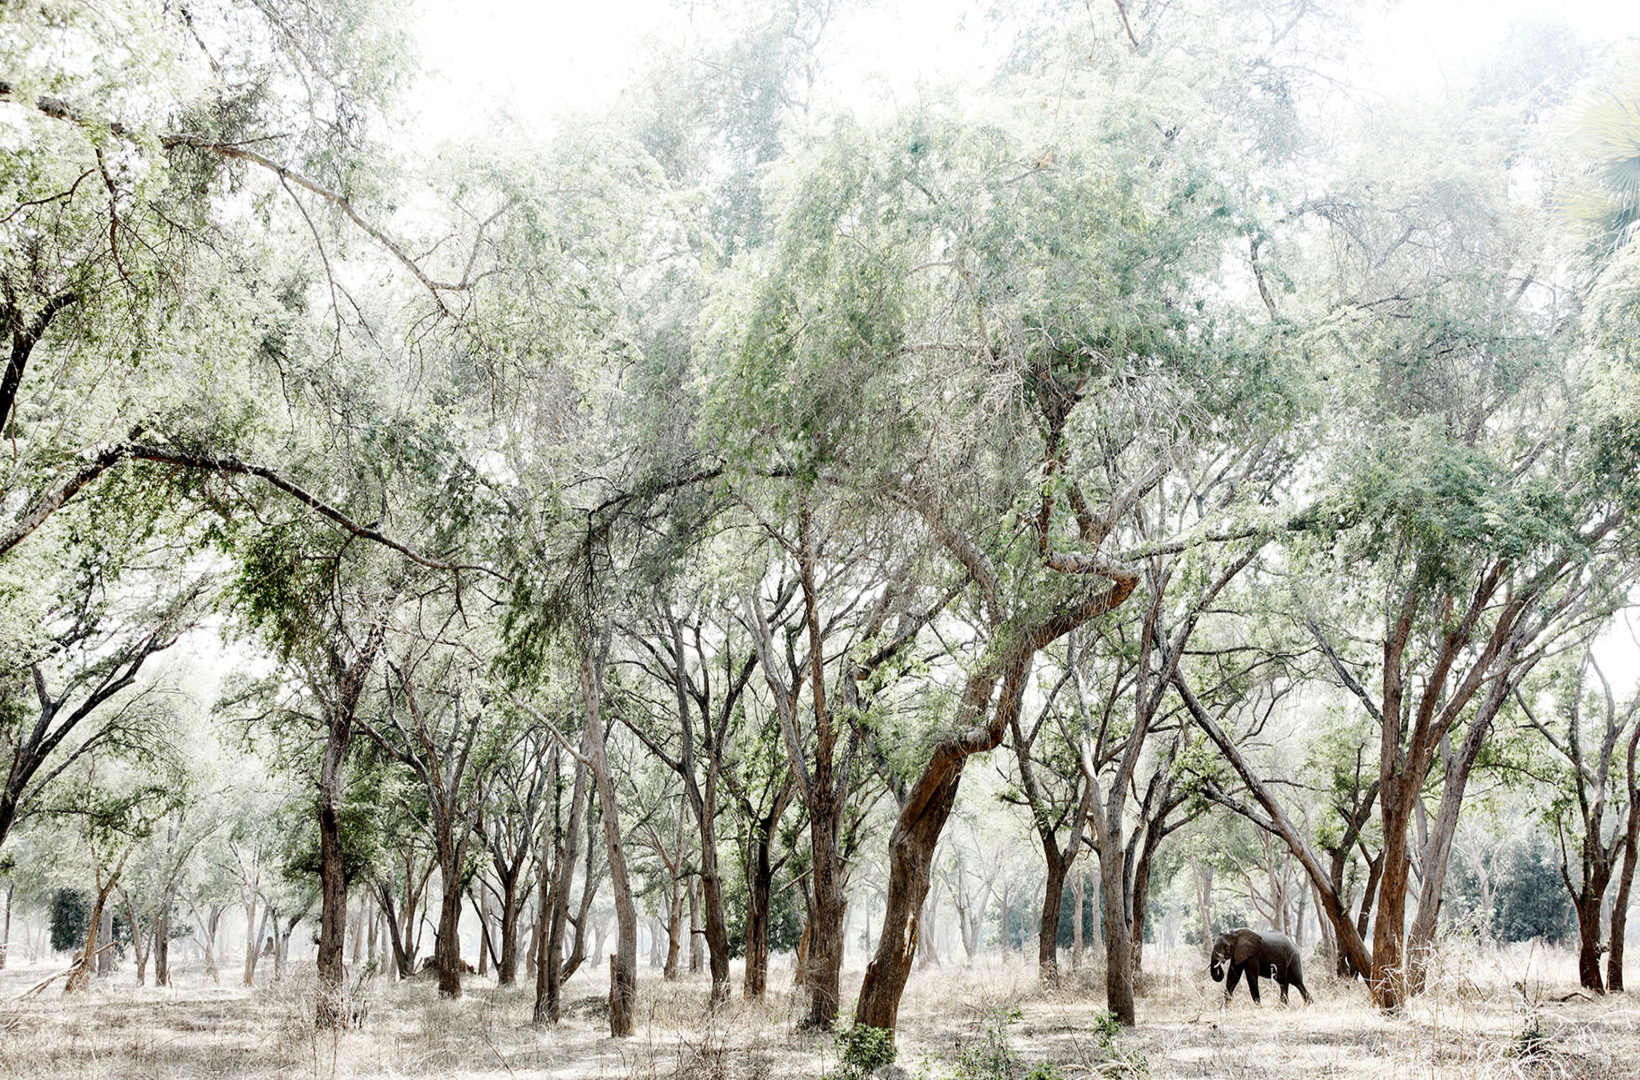 A glade of Ana trees creates a shaded amphitheatre for a lone African elephant walking through the forest in Mana Pools National Park Zimbabwe